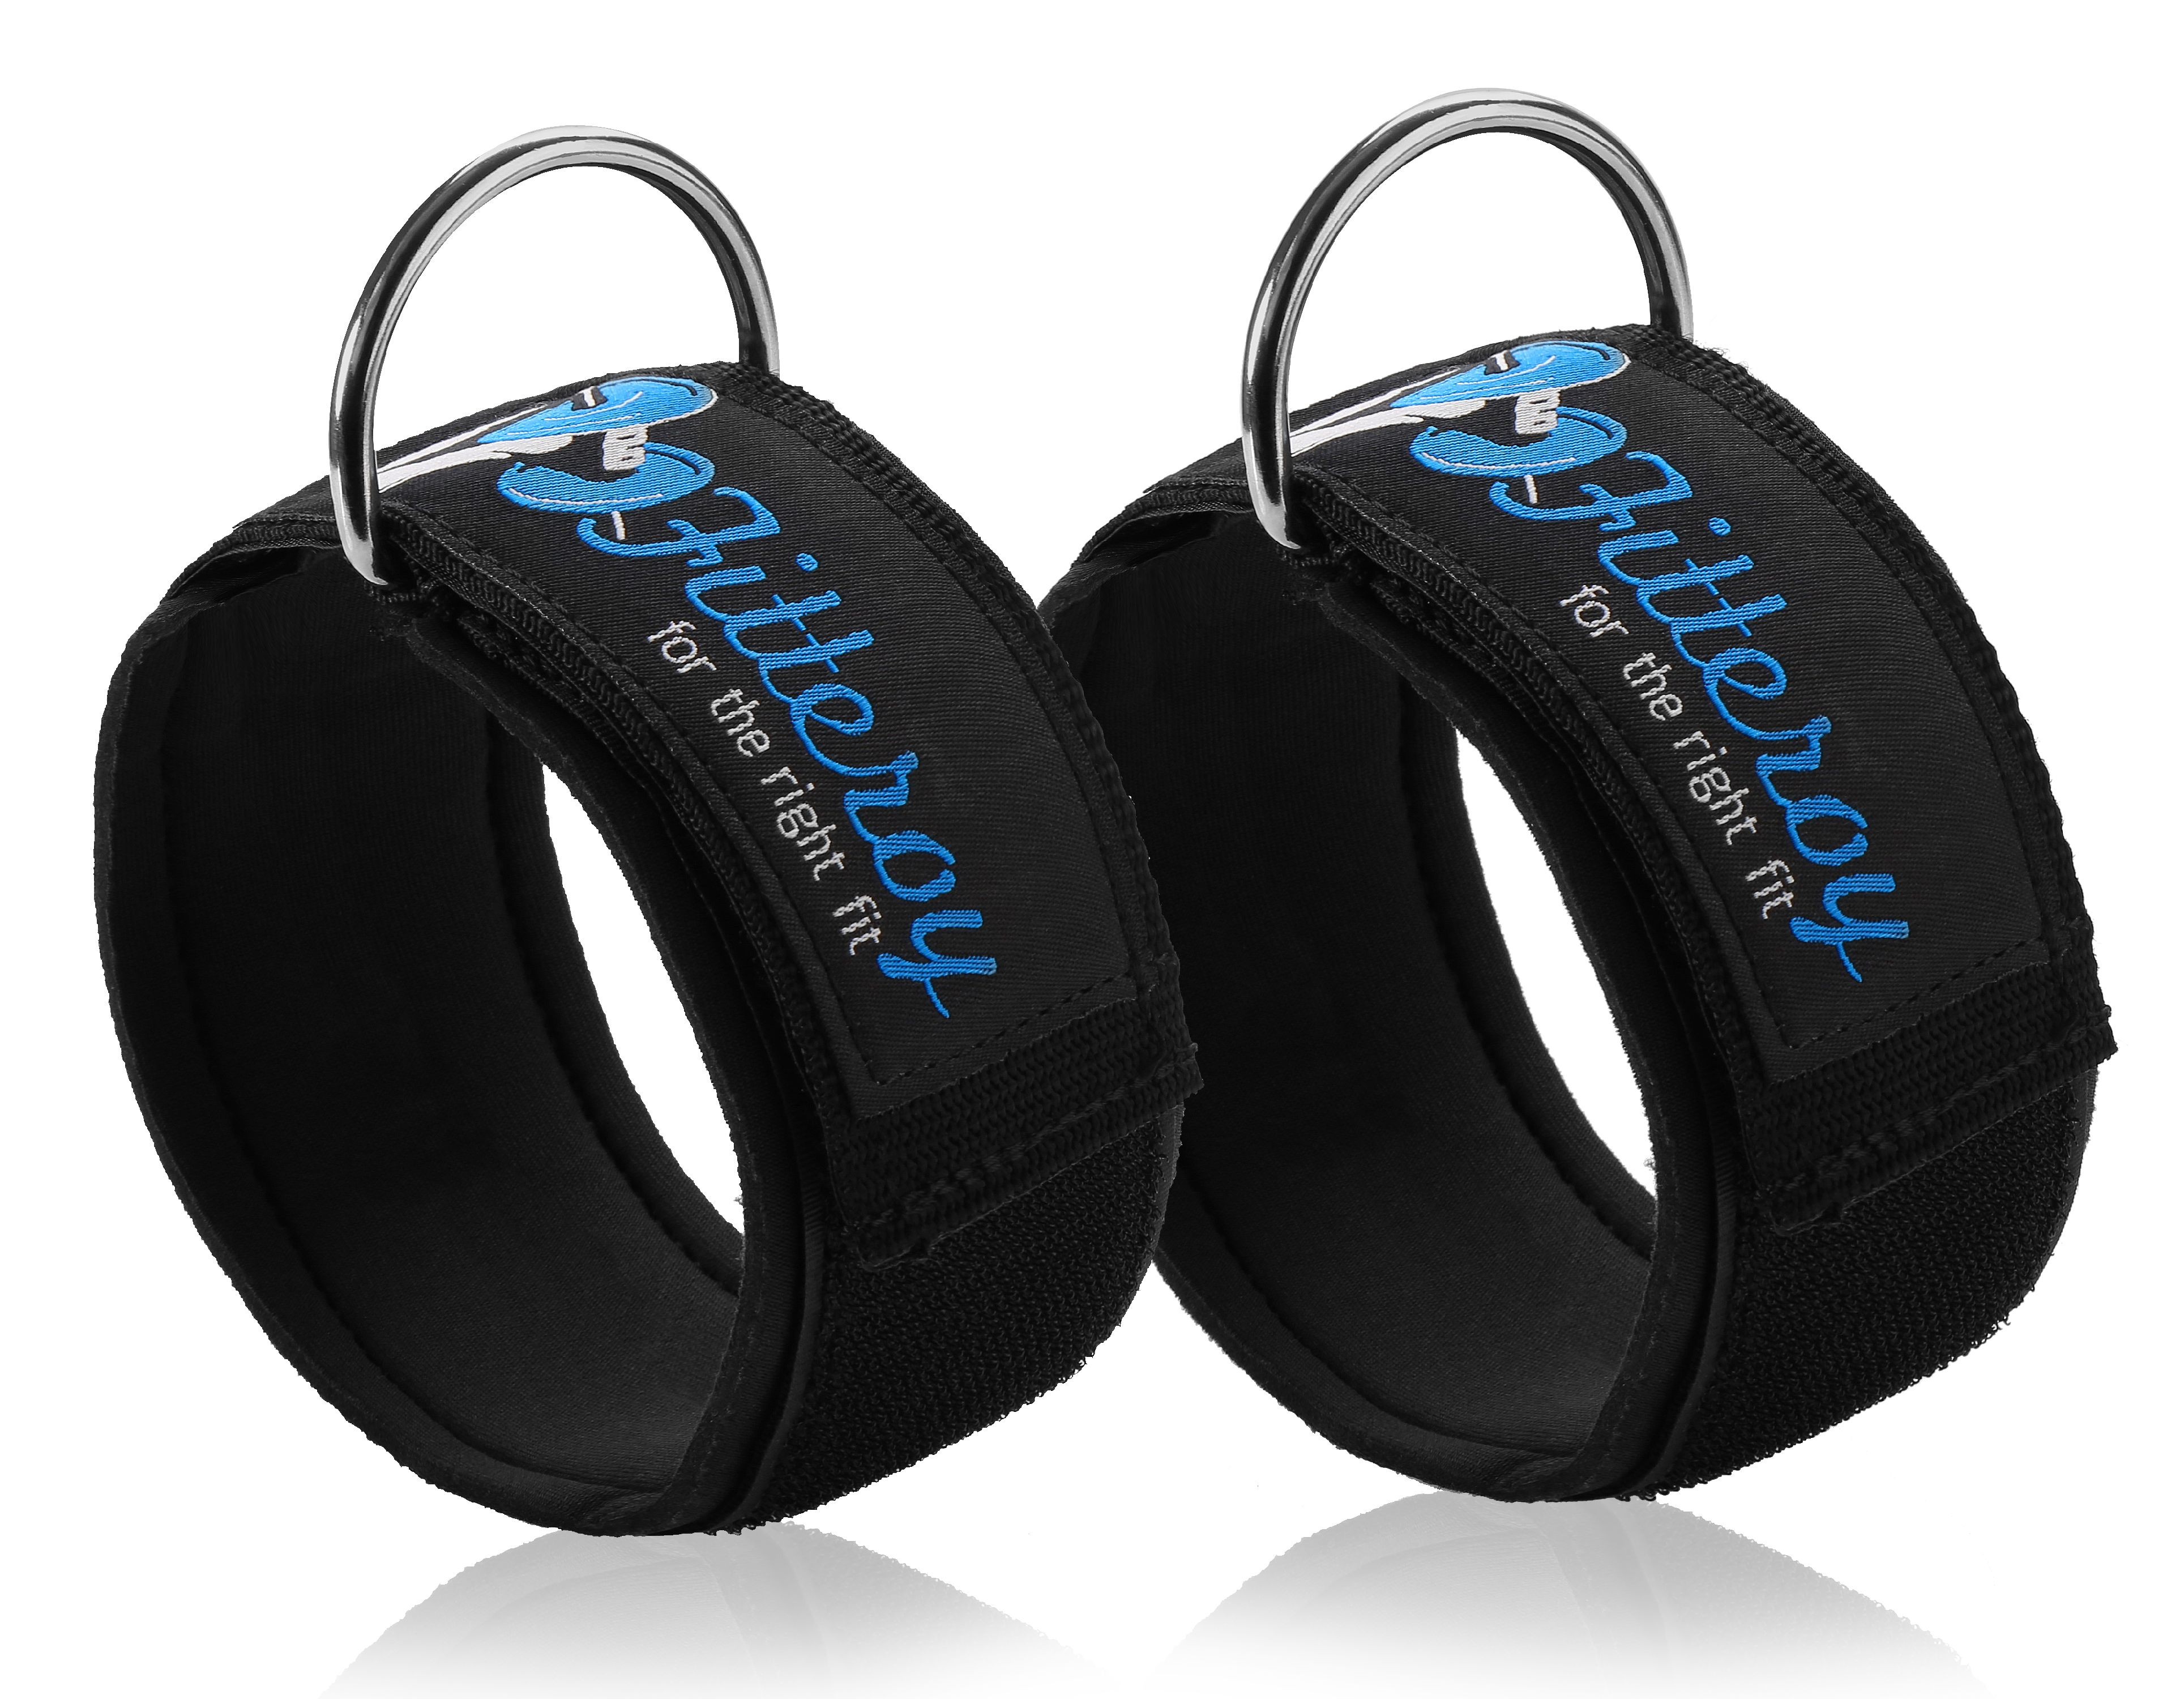 Fitteroy Ankle Straps for Cable Machine and Resistance Exercises (Pair) by Fitteroy Inc